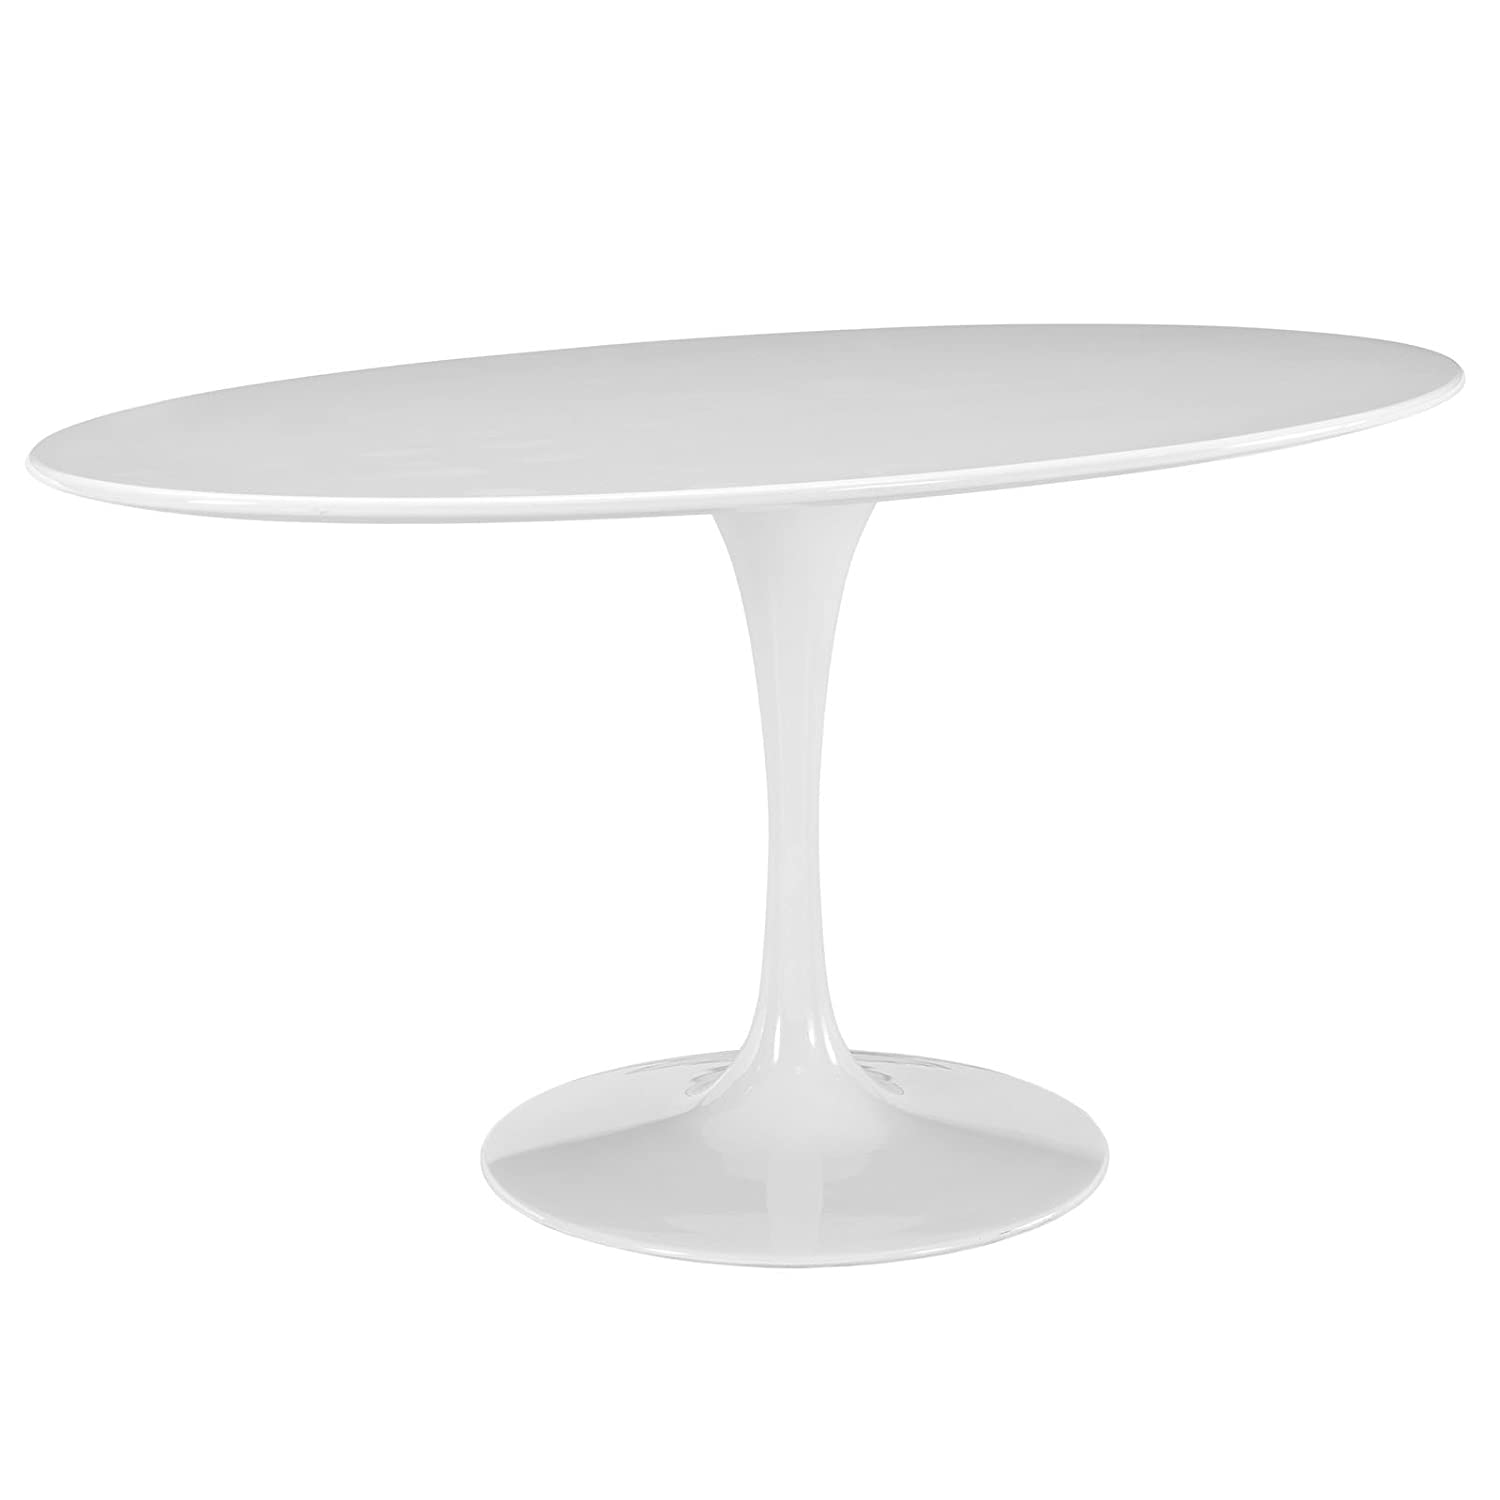 "Amazon Modway Lippa 60"" Oval Shaped Wood Top Dining Table in"